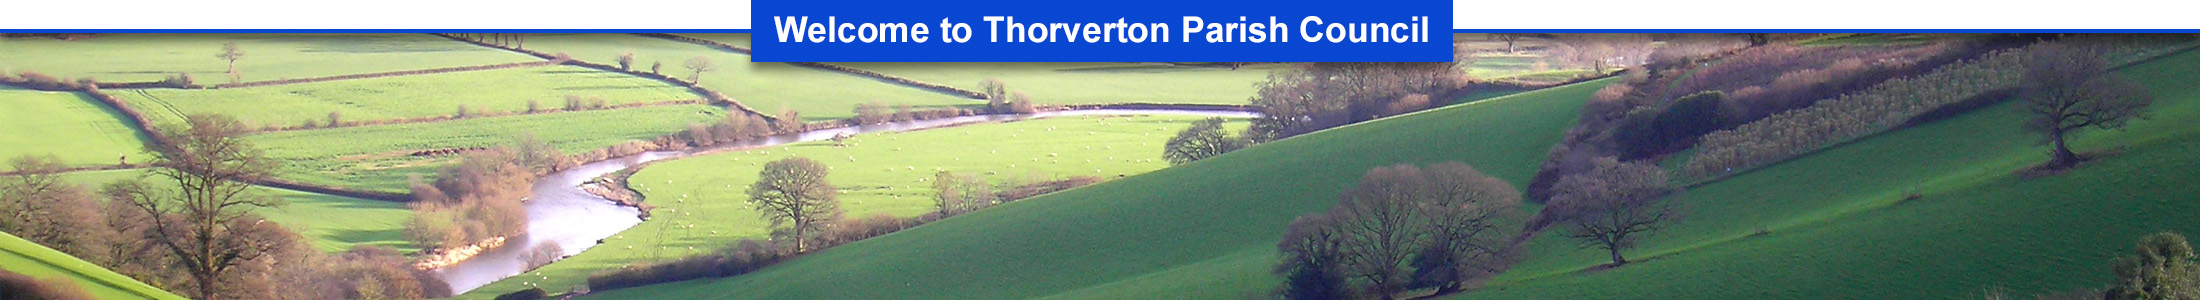 Header Image for Thorverton Parish Council